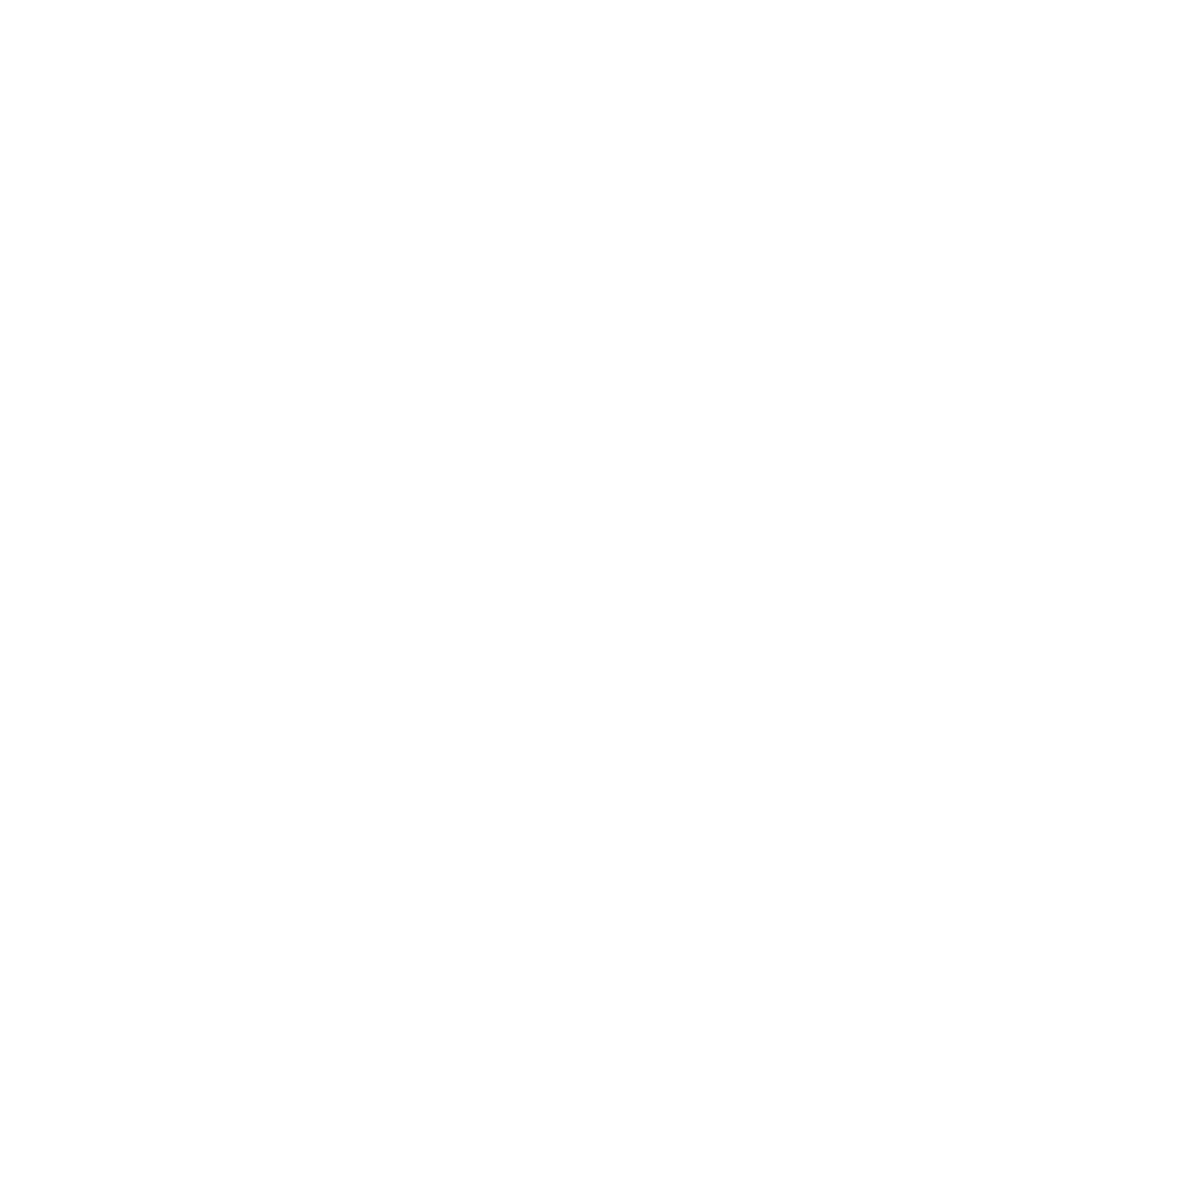 Unifin Protection Value